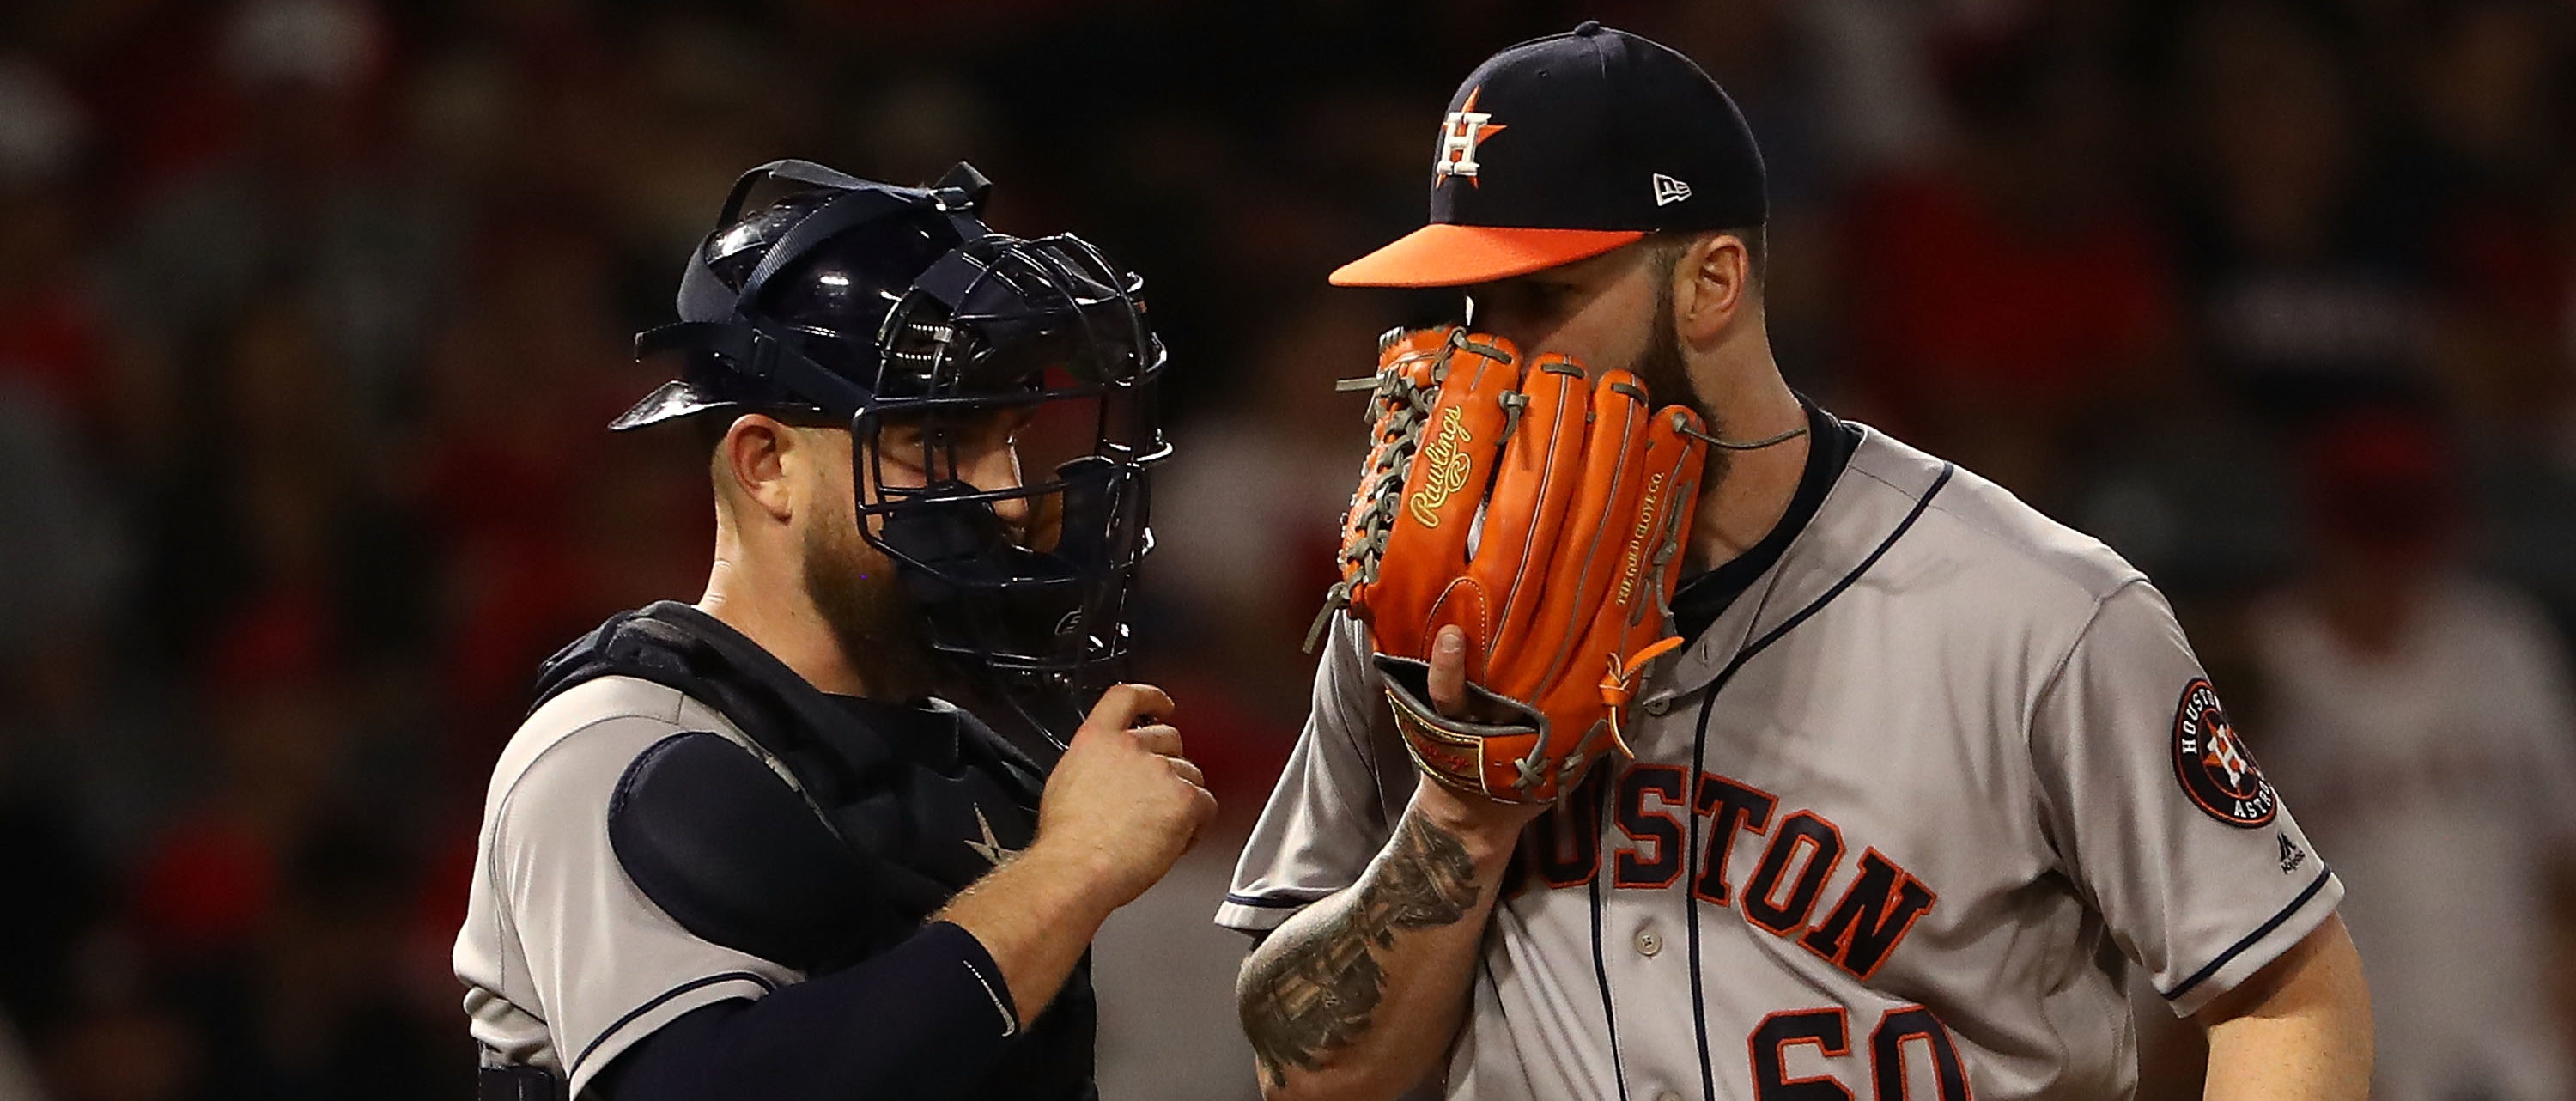 Houston Astros Apologize For Cheating Scandal, Vow It Will Never Happen Again